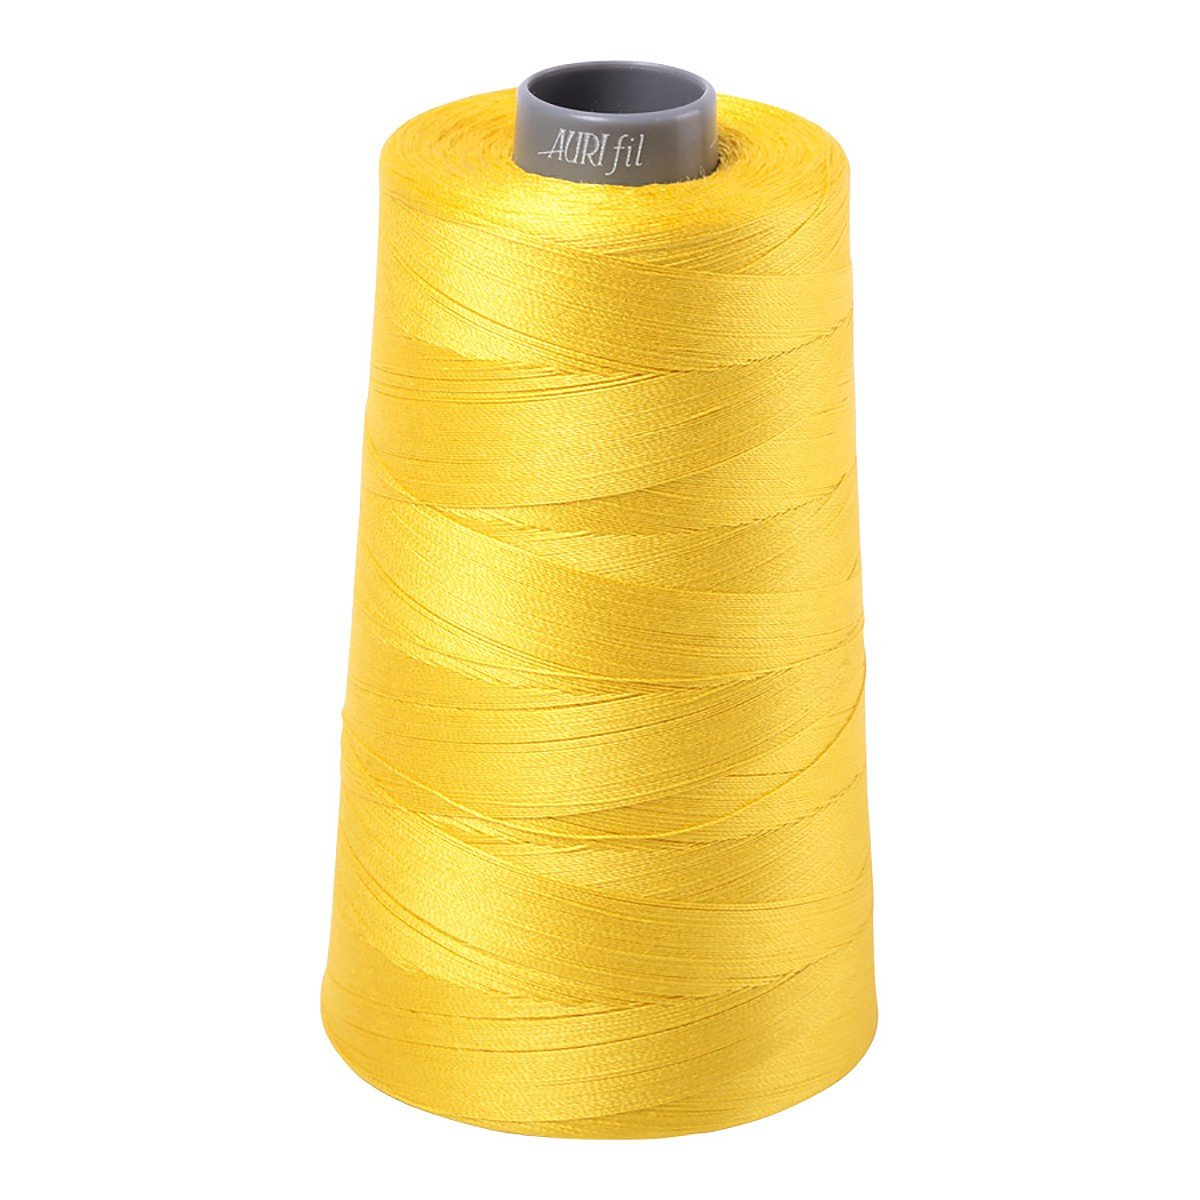 Mako (Cotton) Embroidery Thread 28wt 3609yds Canary